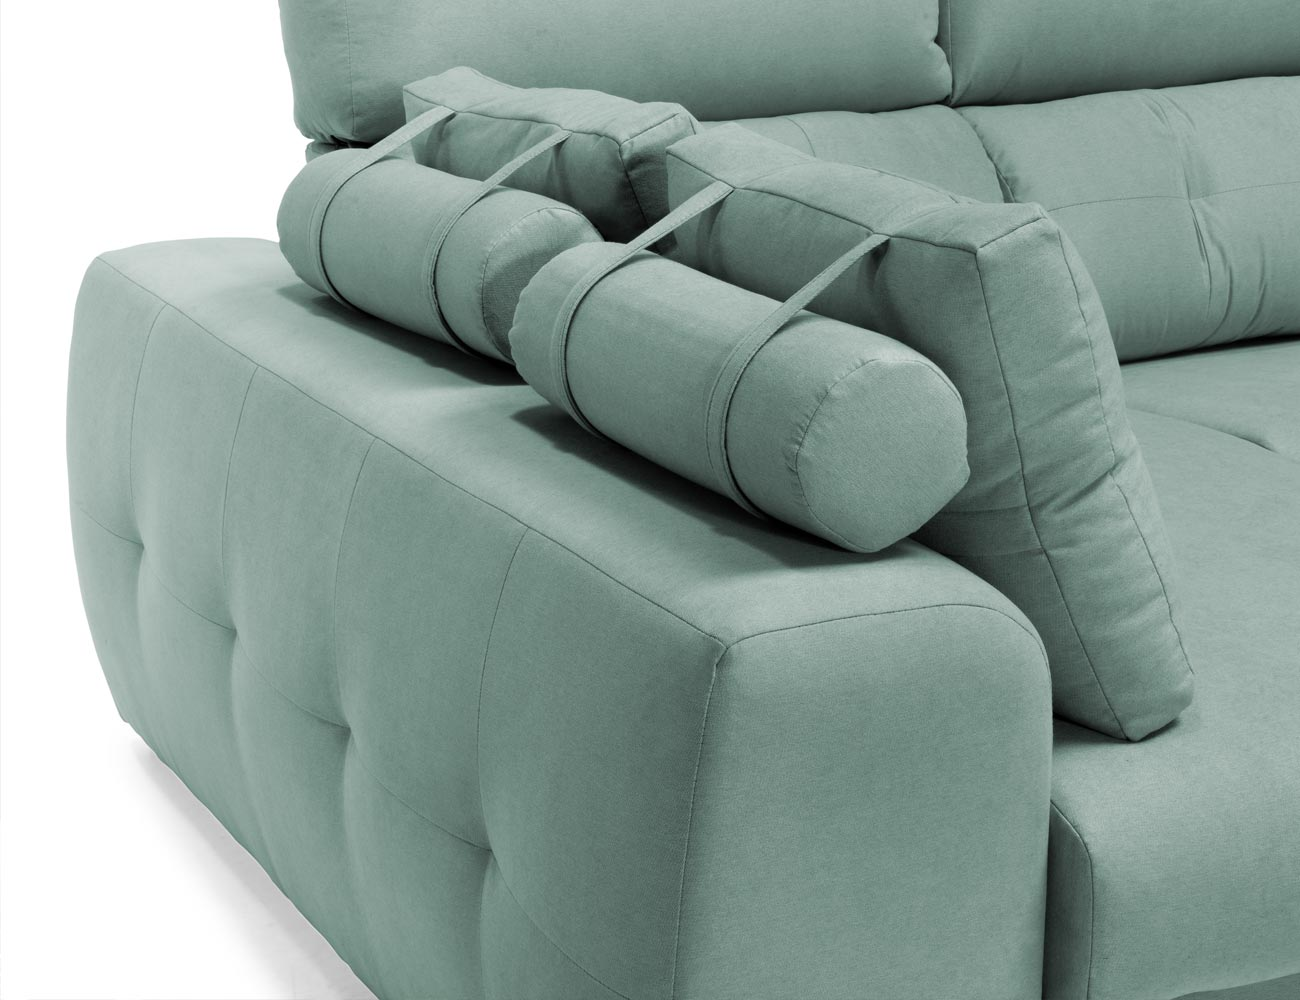 Sofa chaiselongue valetta detalle